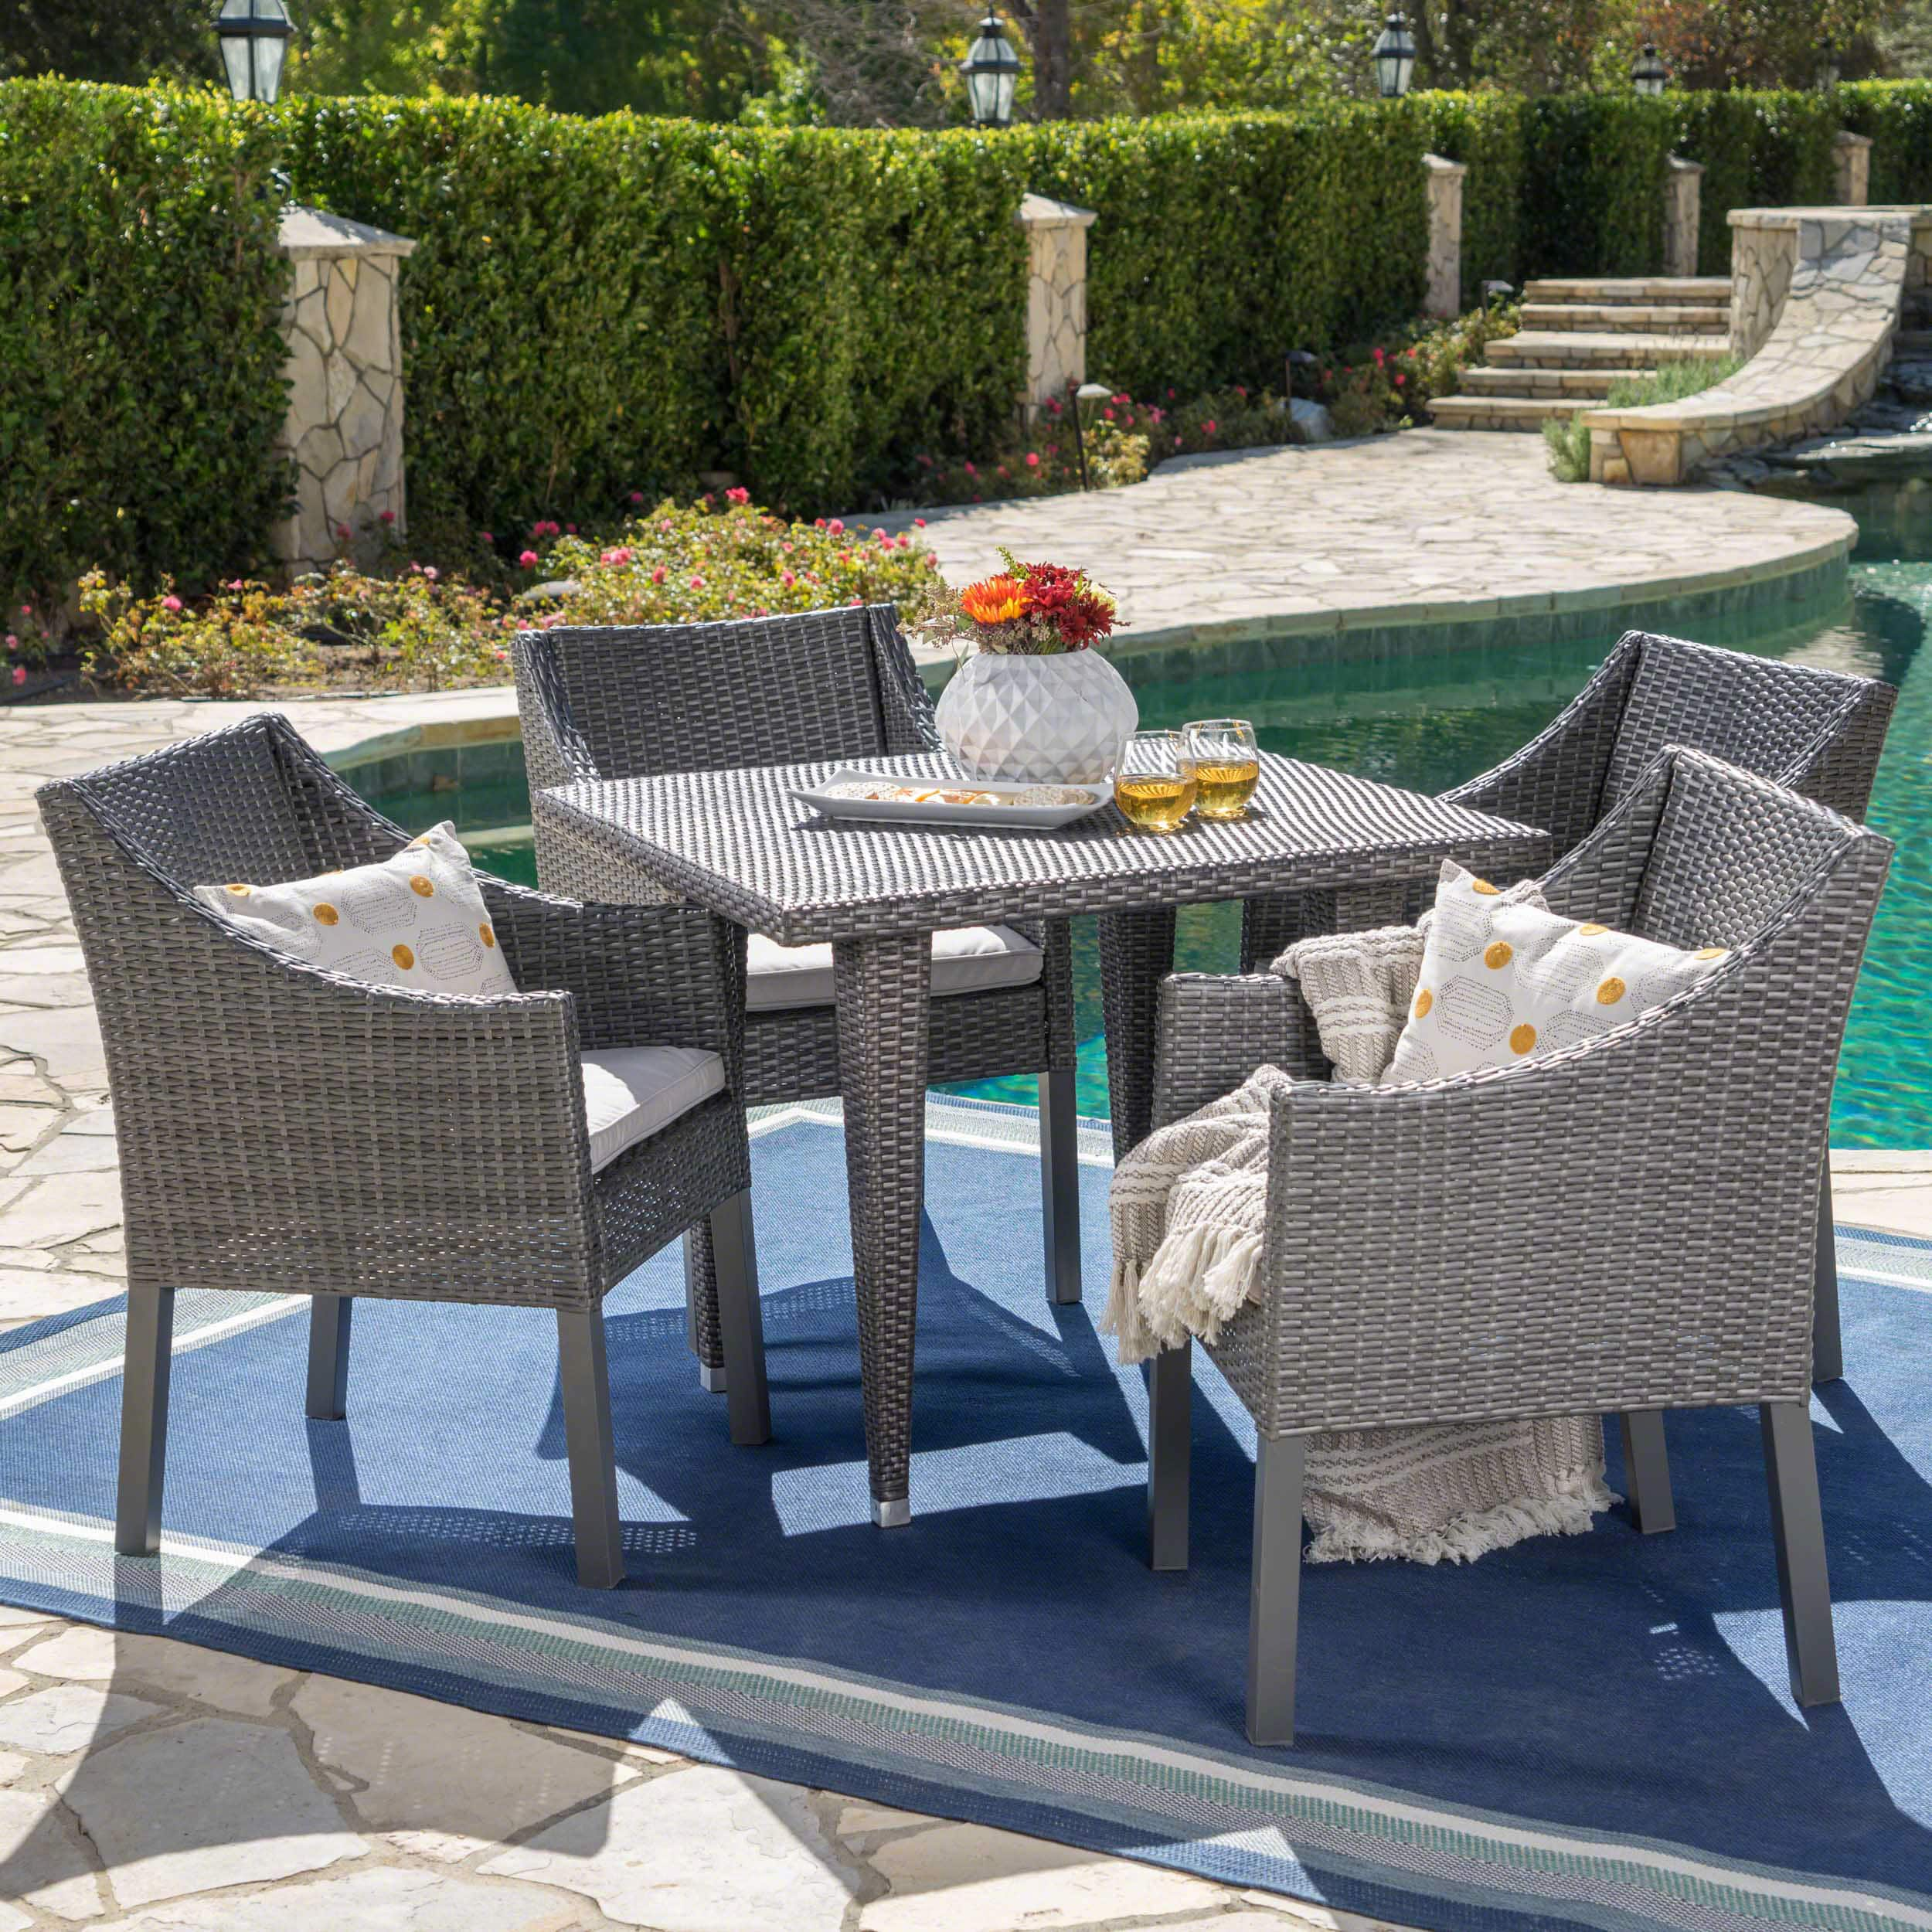 Christopher Knight Home Alameda Outdoor 5-piece Wicker Square Dining Set with Water Resistant Cushions by